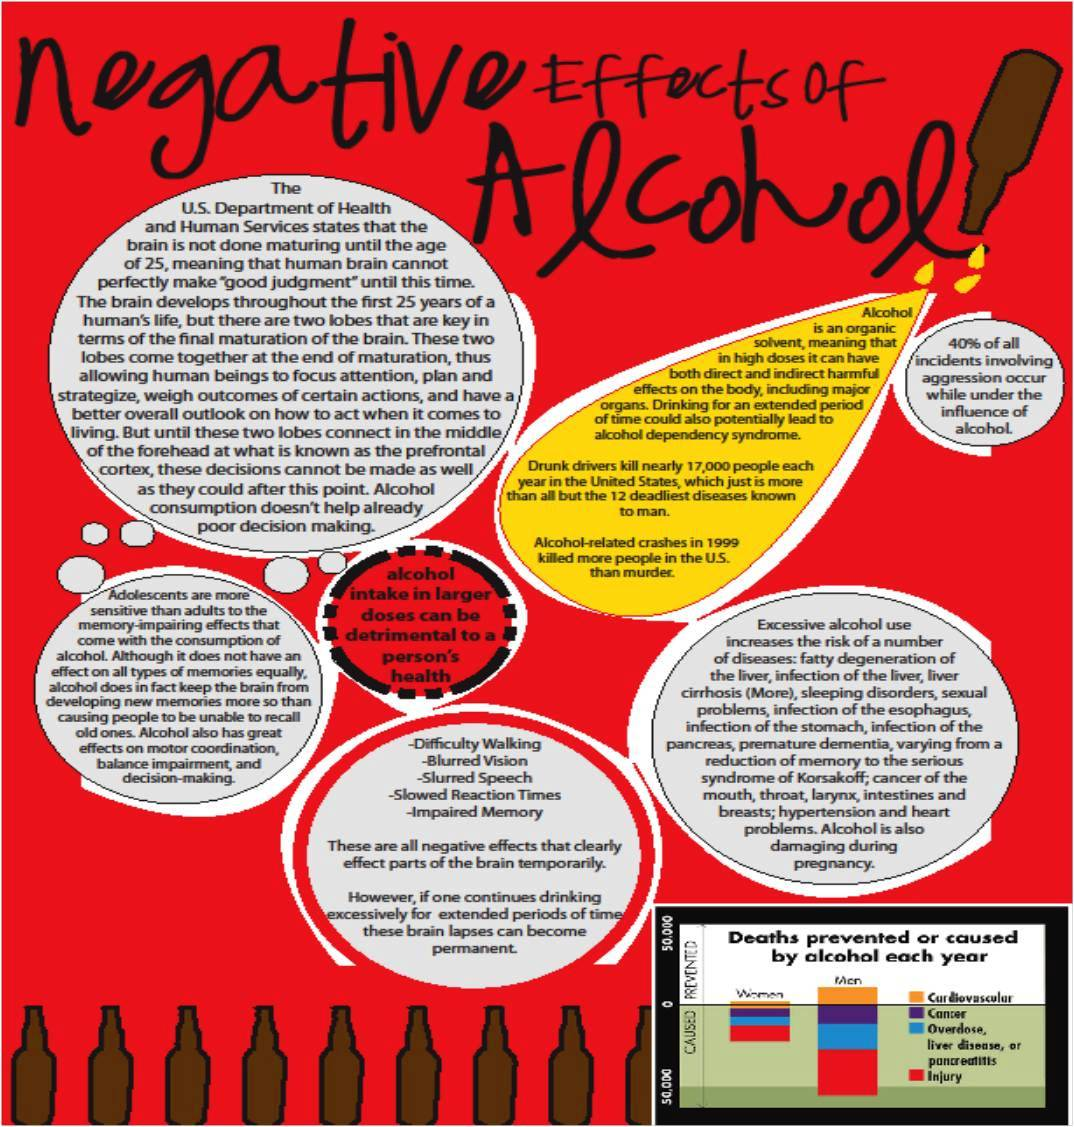 essay on negative effects of alcohol